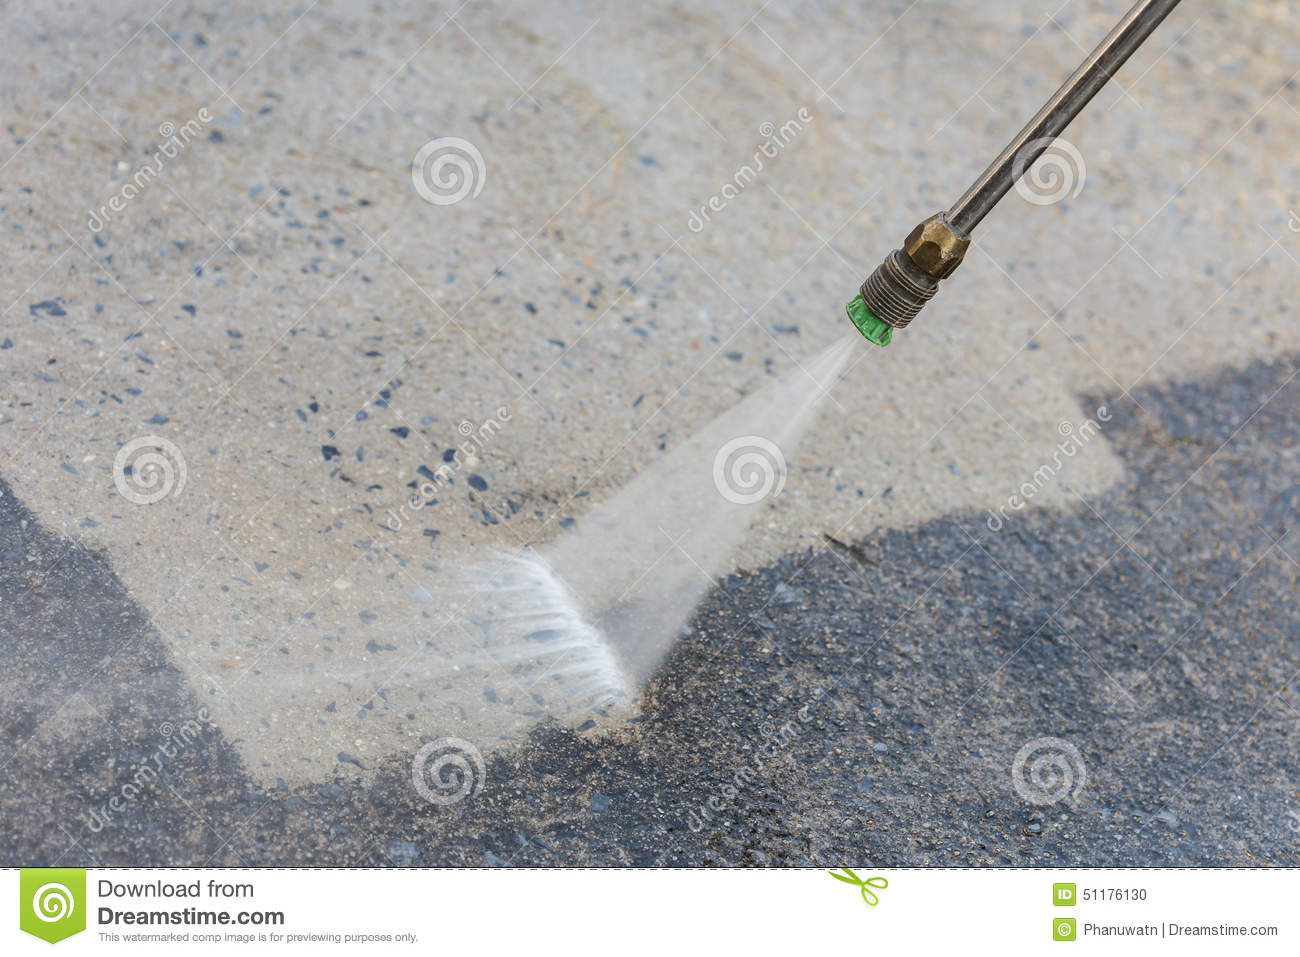 Outdoor Floor Cleaning With High Pressure Water Jet Stock